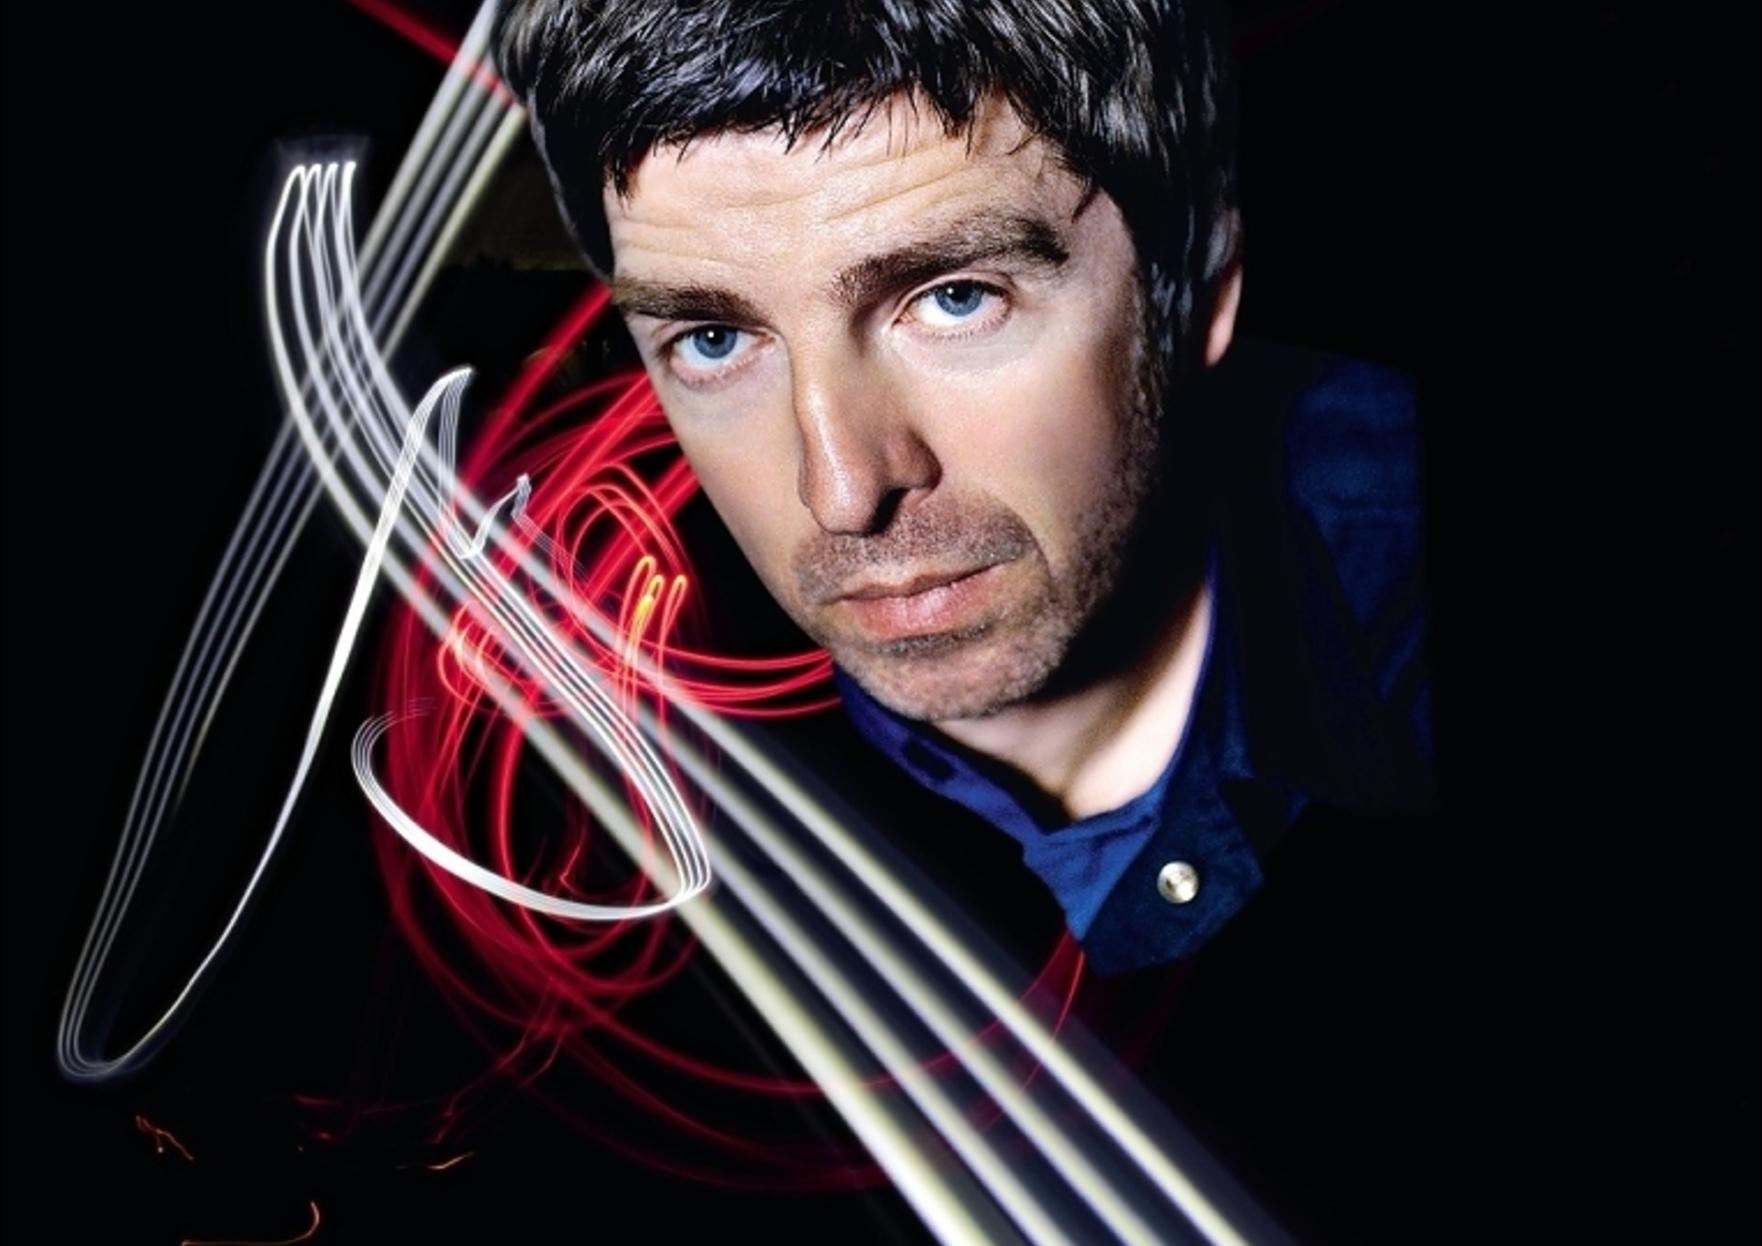 Feature_noelgallagher_CREDIT_Danny Clinch.JPG